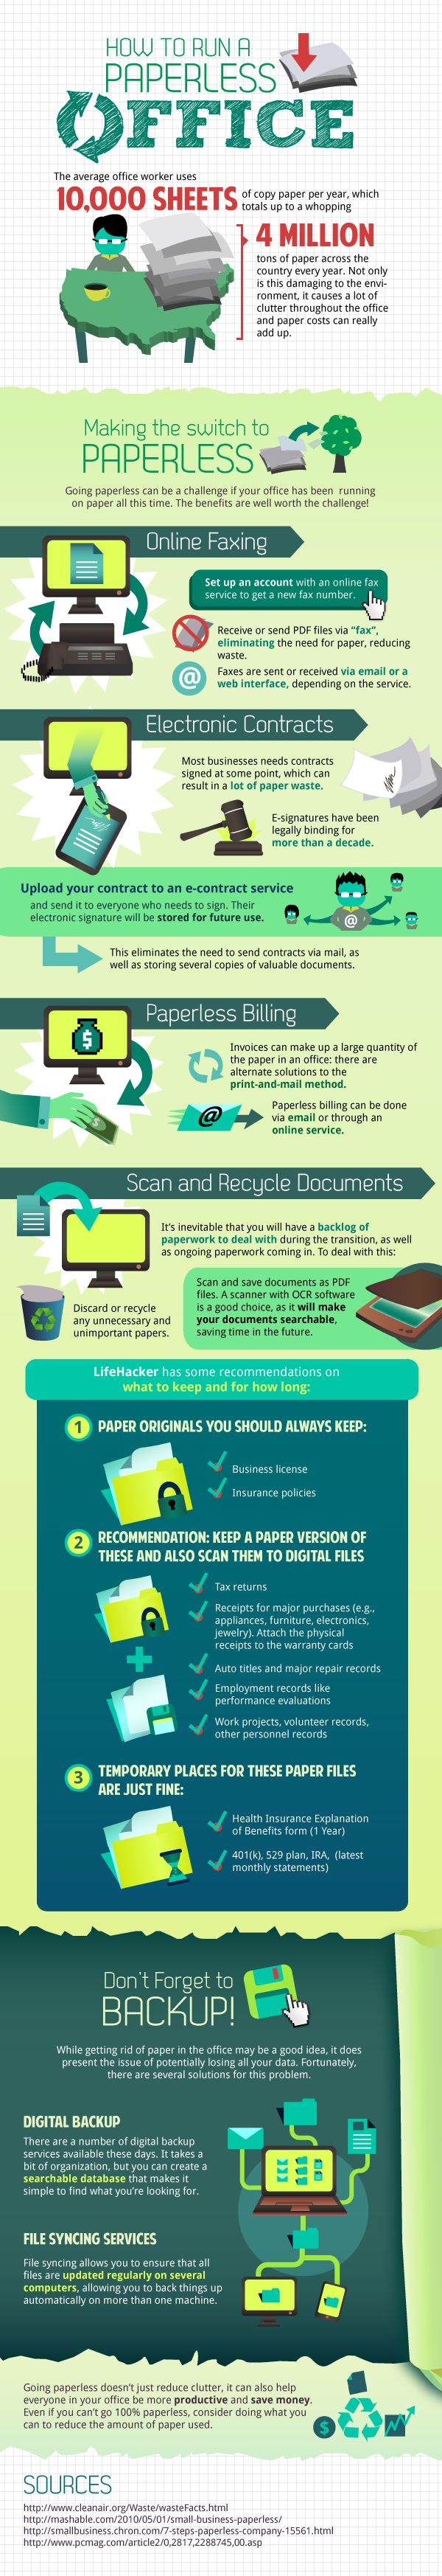 How to Run a Paperless Office. I am completely digital except my to do list which I recycle